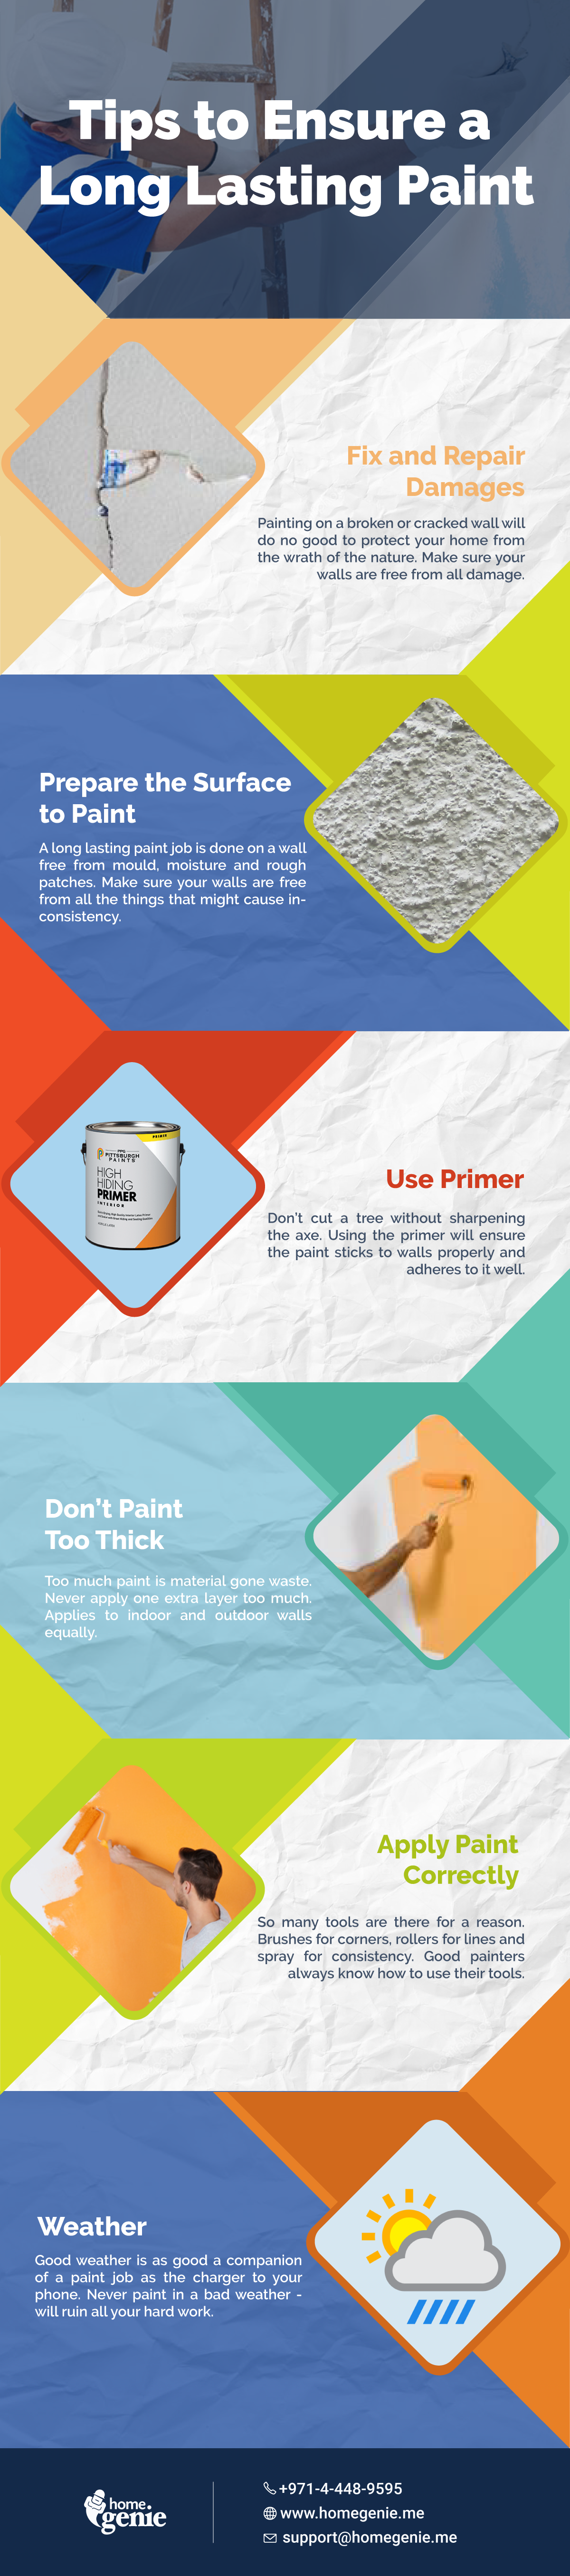 Some useful tips to ensure a long lasting paint that are ...